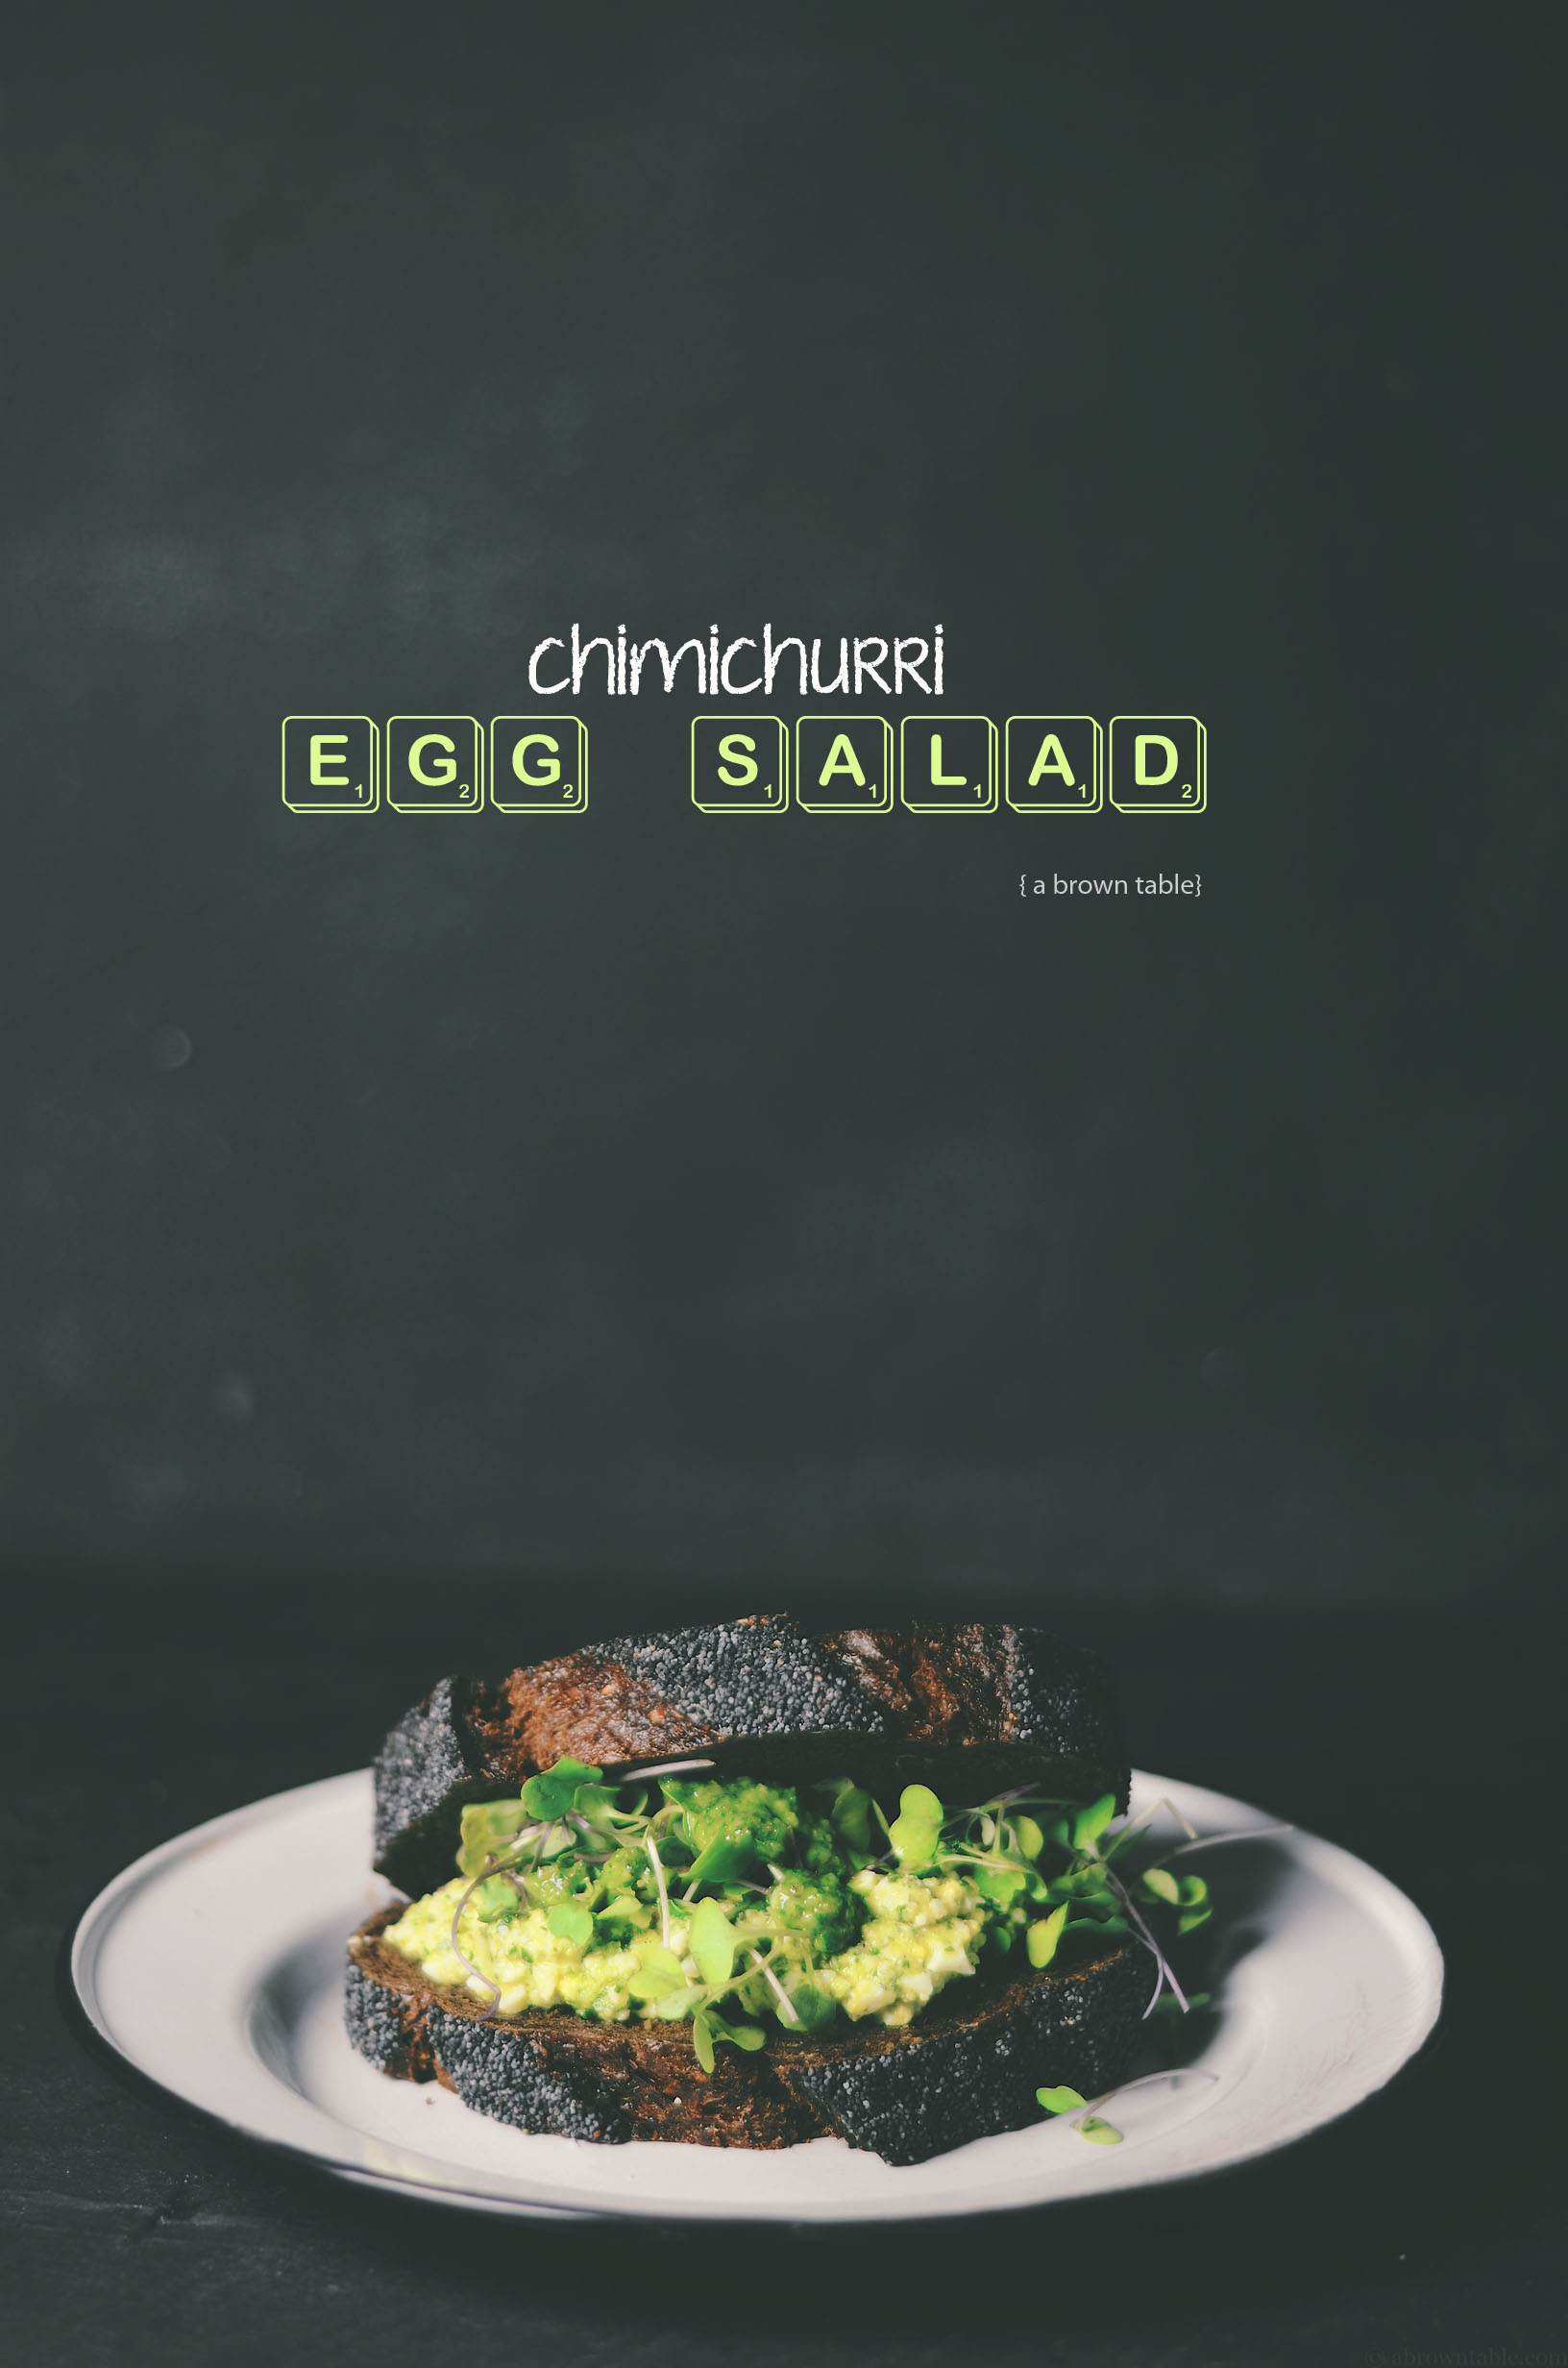 chimichurri flavored egg salad sandwich